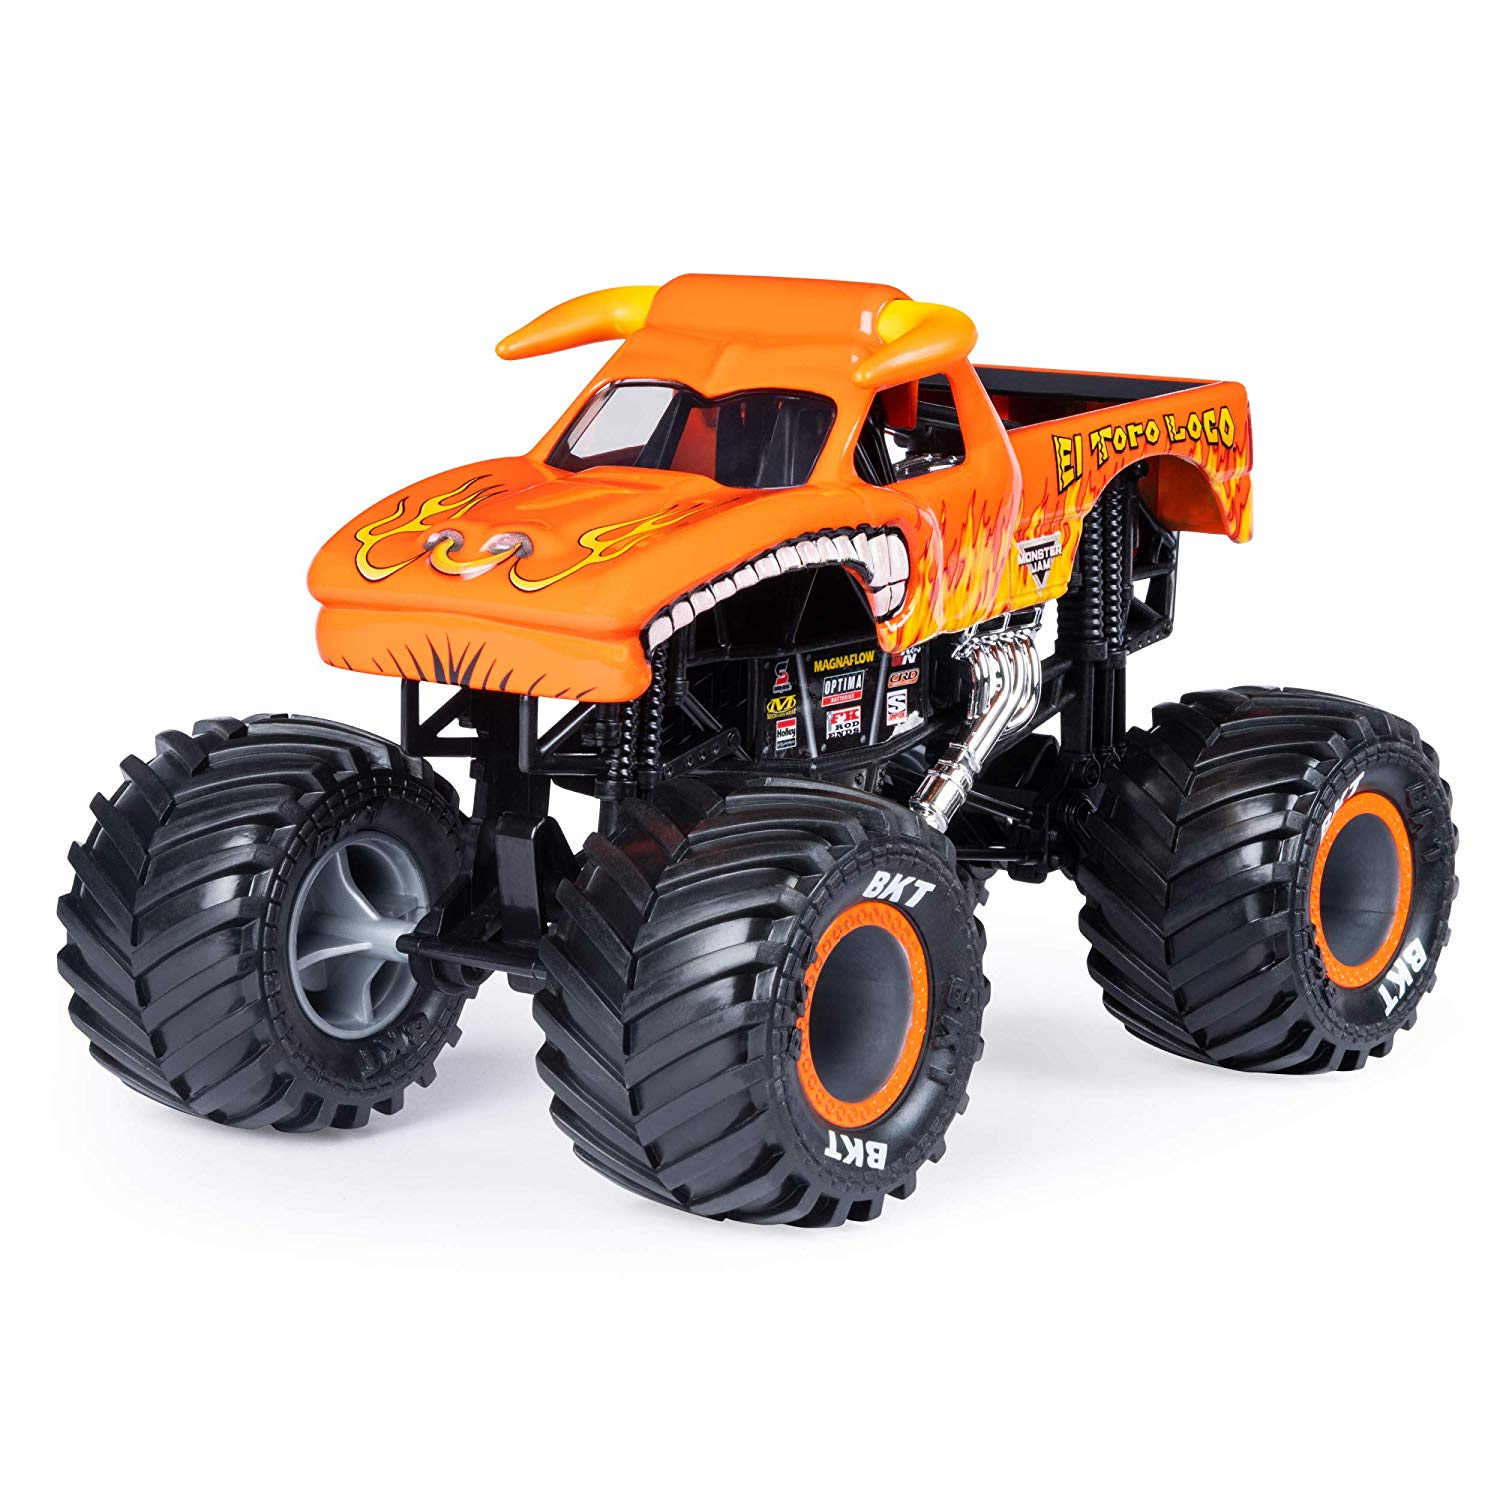 Monster Jam Diecast - El Toro Loco - Escala 1:24 - Original